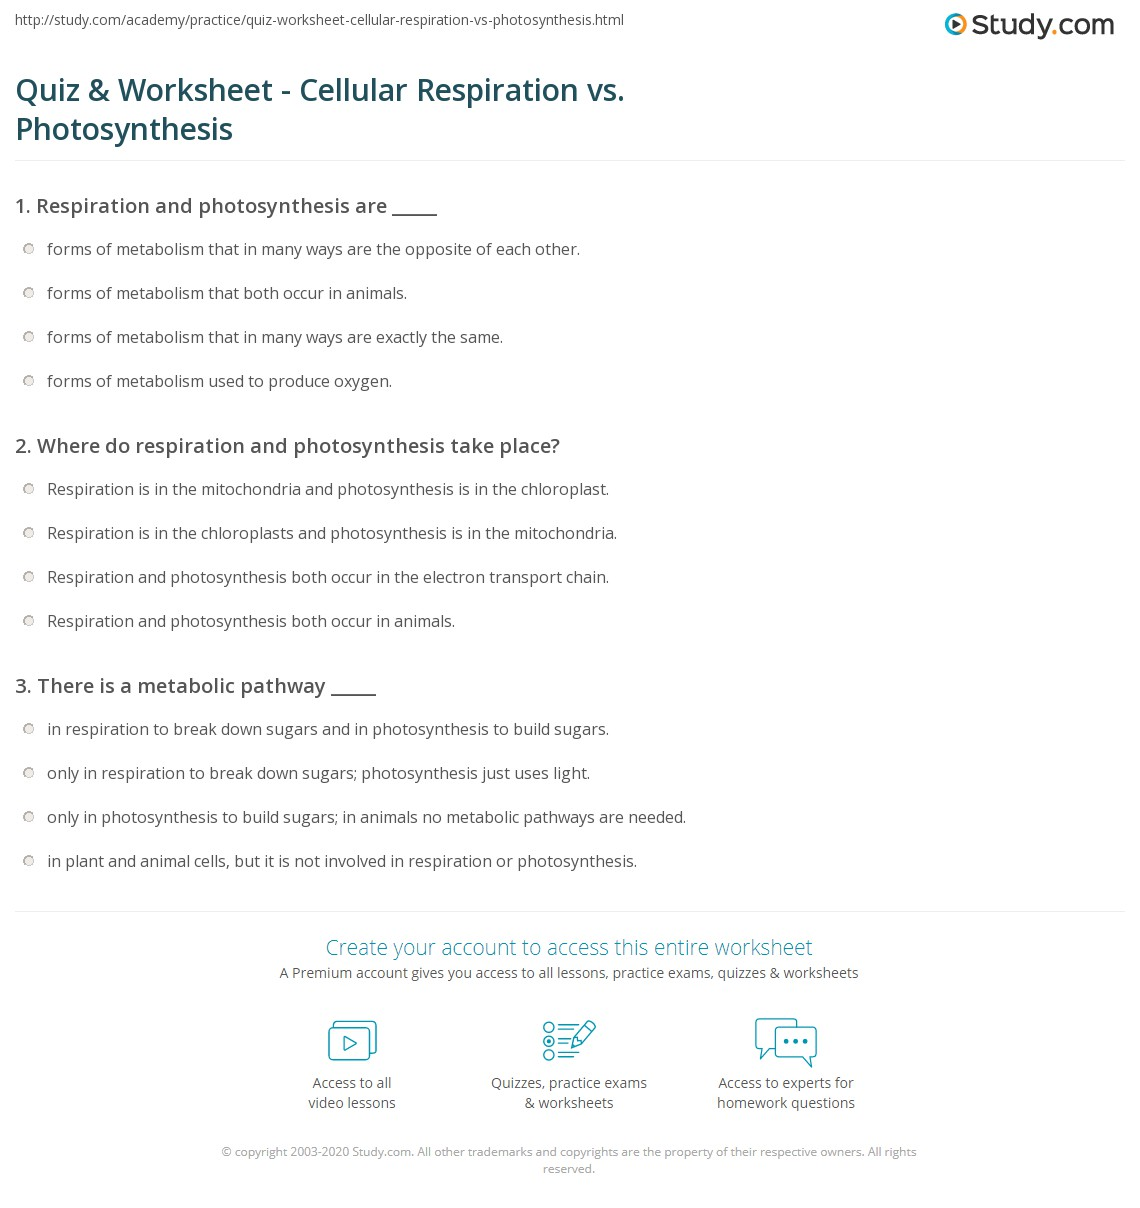 Quiz & Worksheet - Cellular Respiration vs. Photosynthesis | Study.com